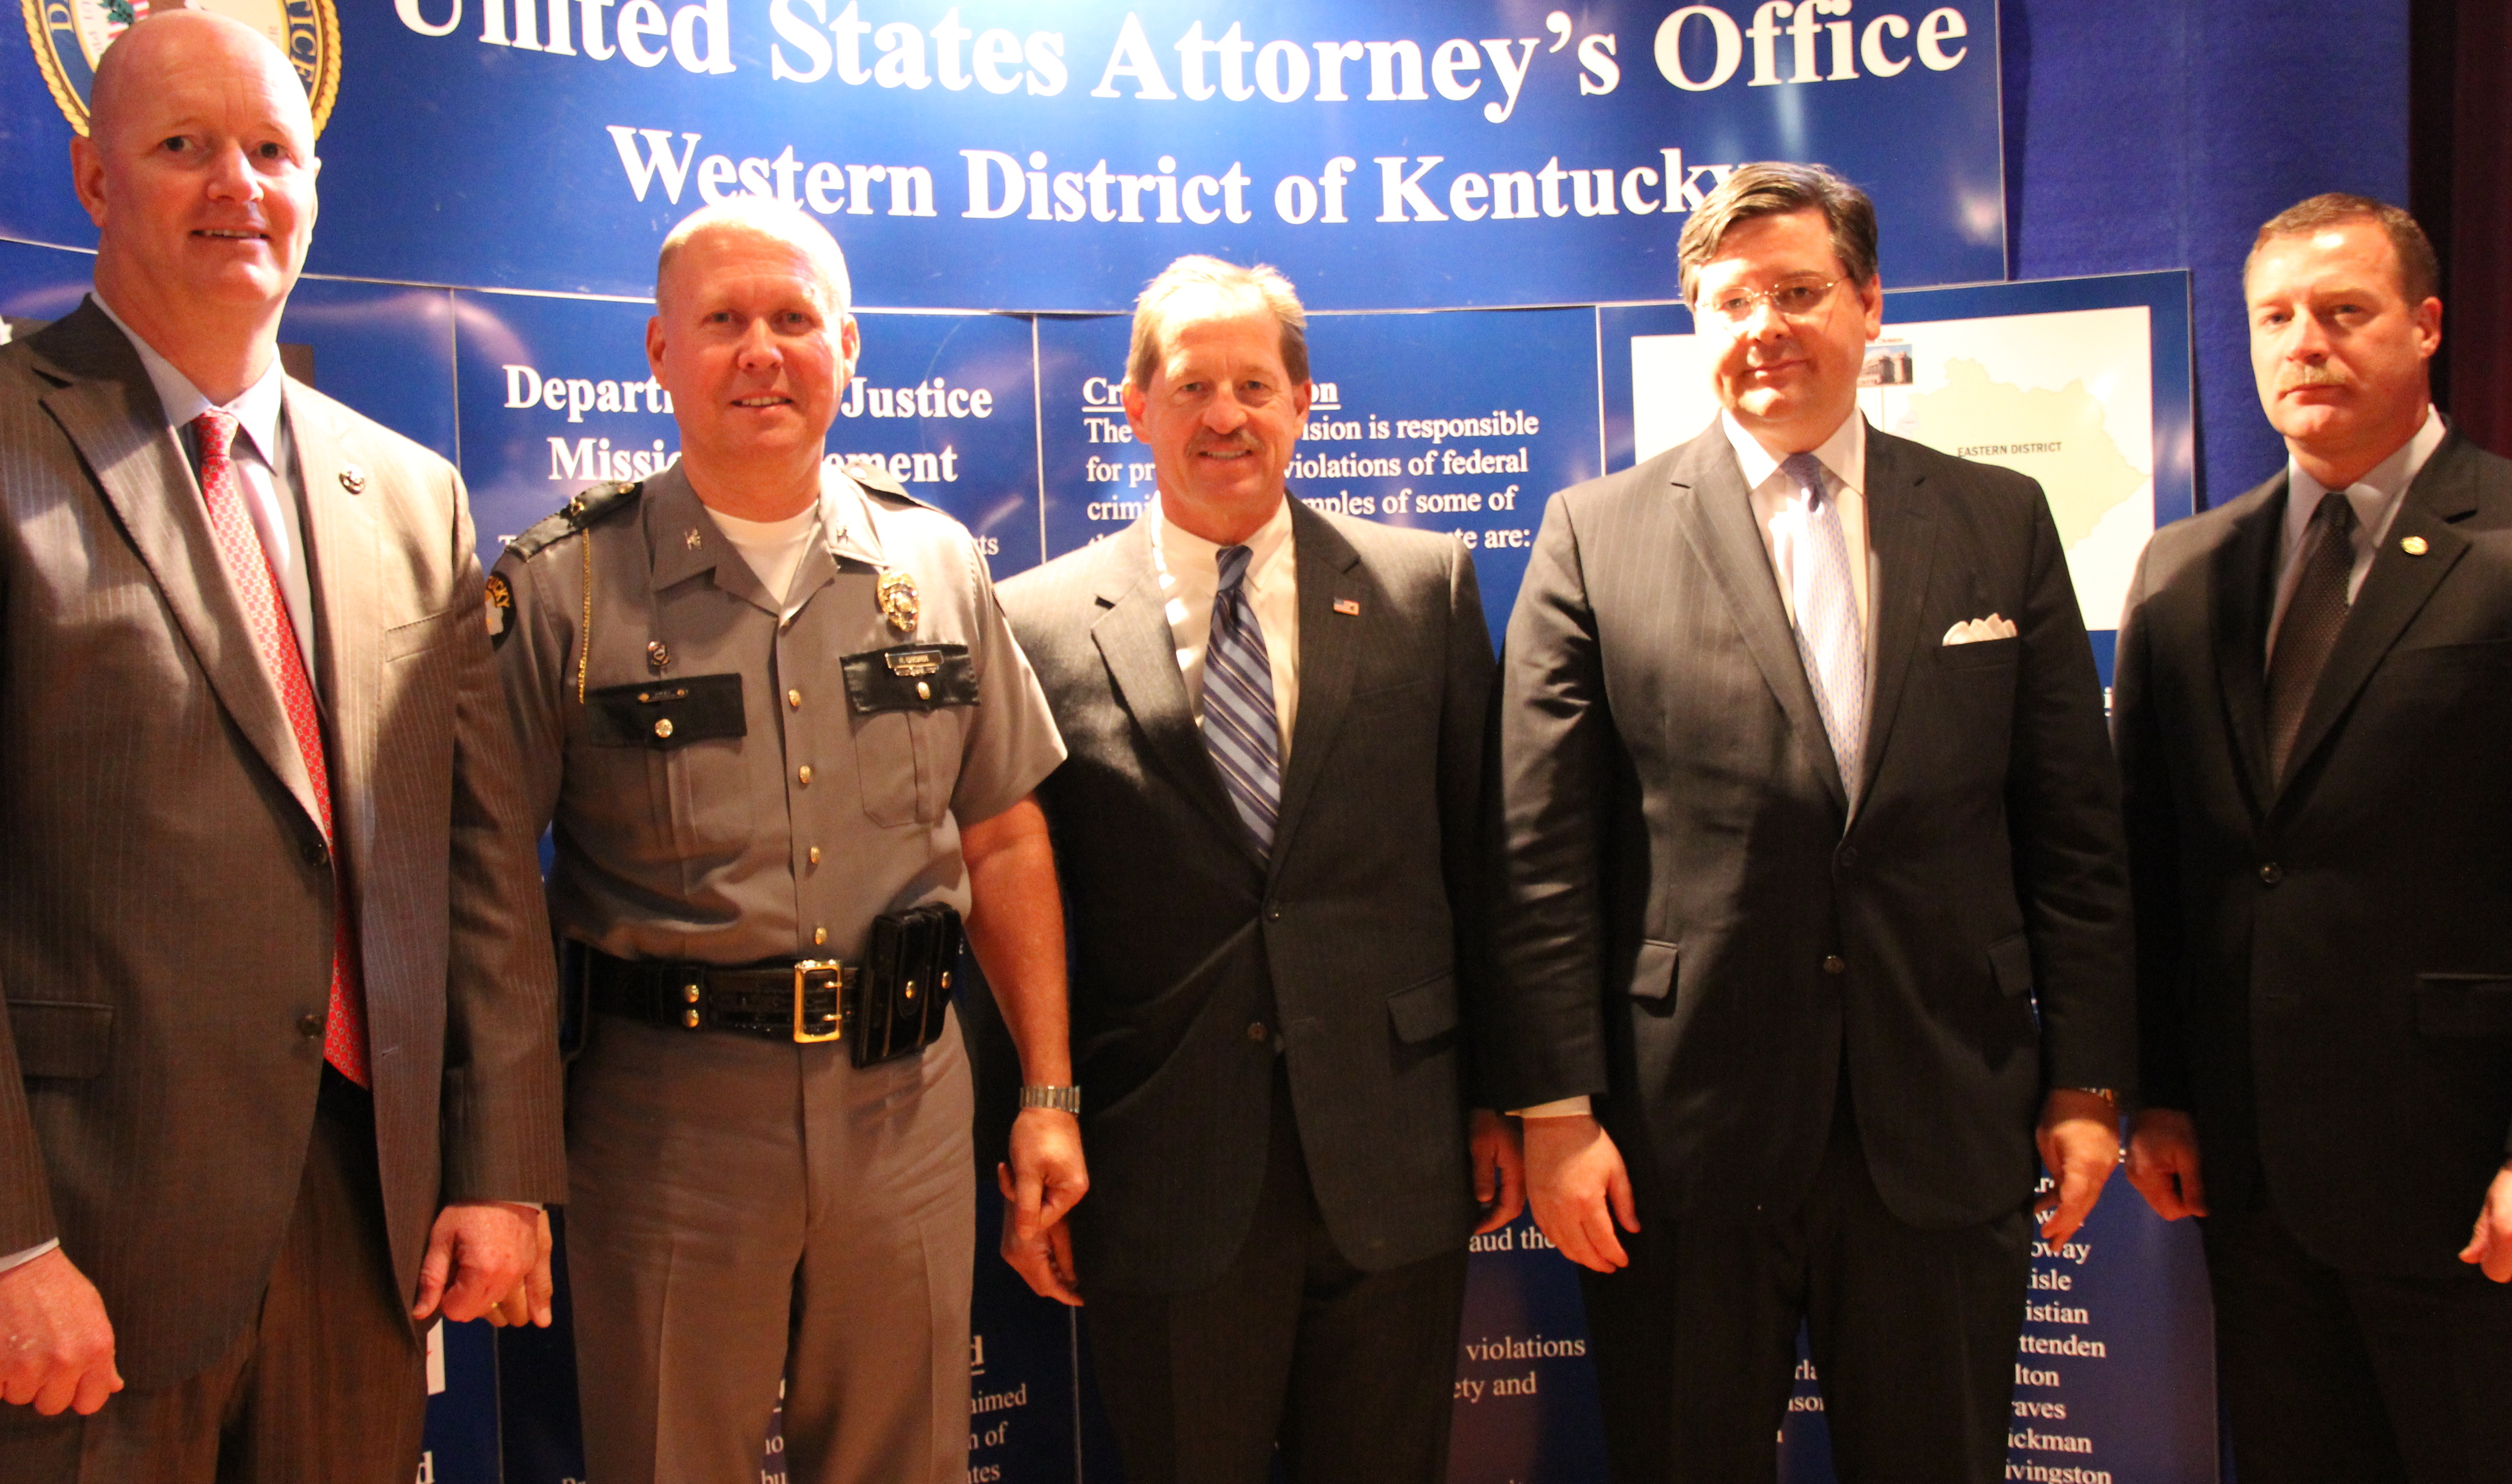 James Clark, United States Marshal-WDKY; Rodney Brewer, Kentucky State Police Commissioner; Paul Johnson, USSS Special Agent in Charge; David J. Hale, United States Attorney-WDKY; Stuart L. Lowrey, ATF Special Agent in Charge